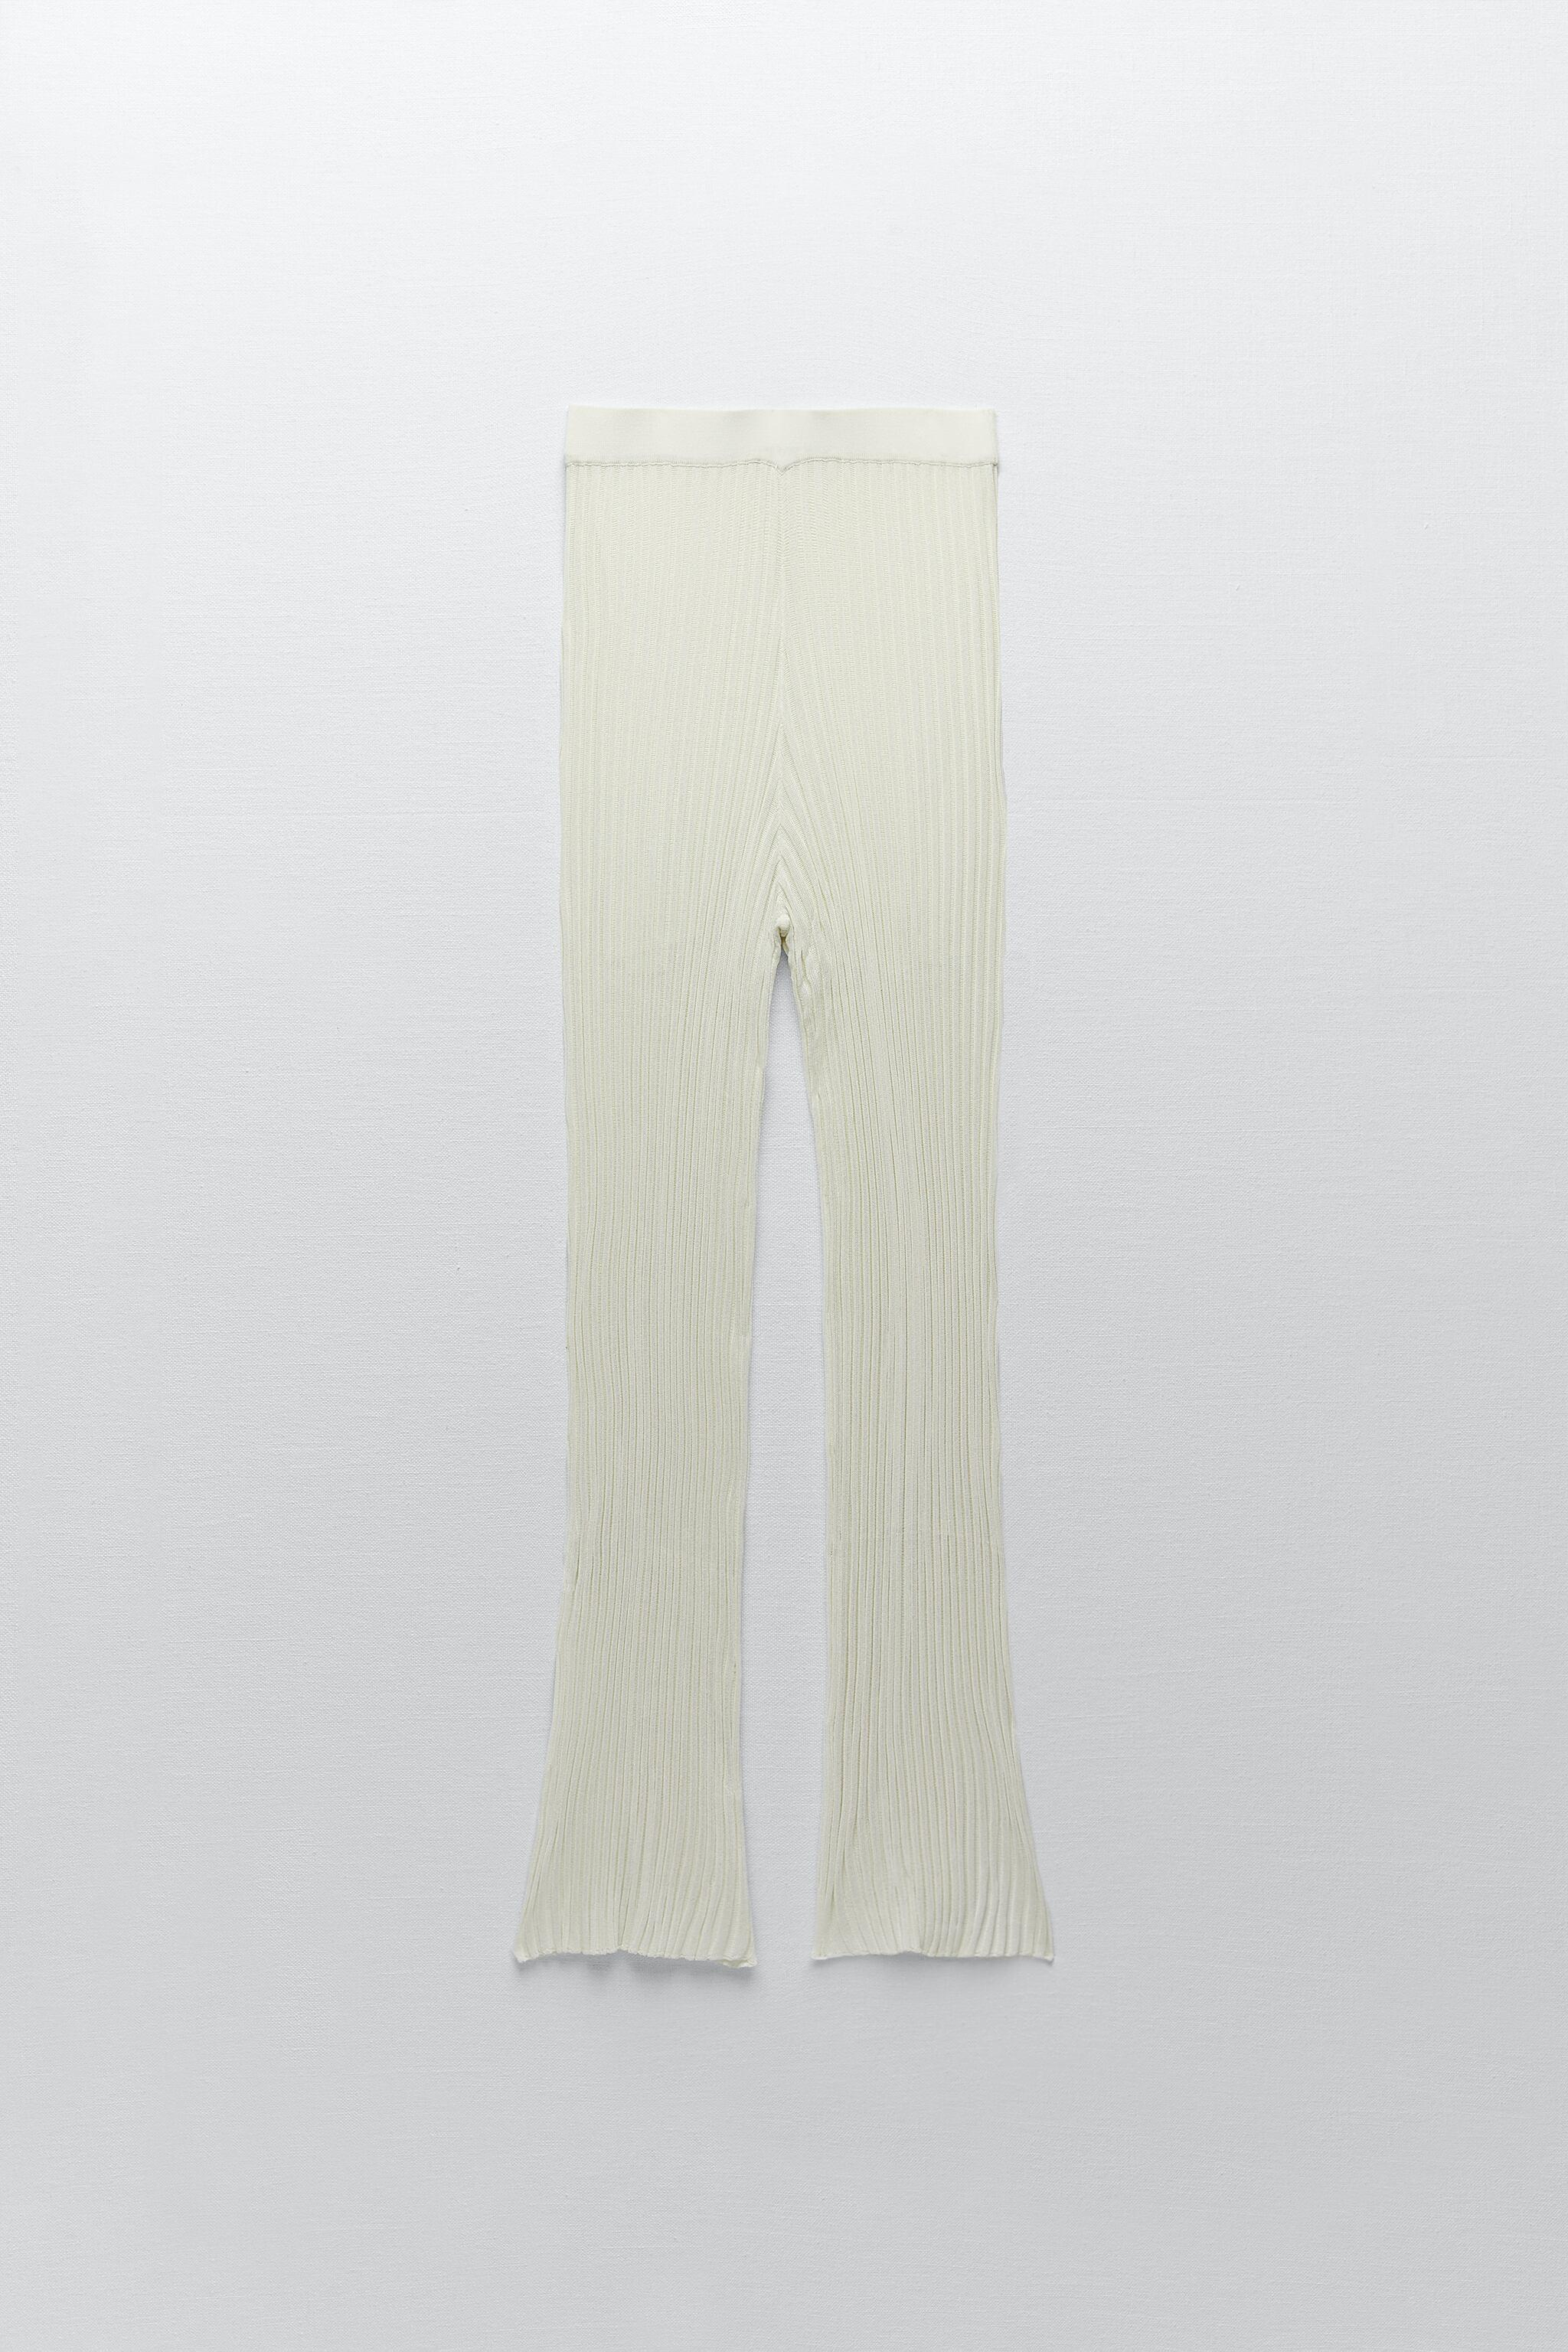 KNIT PANTS LIMITED EDITION 3